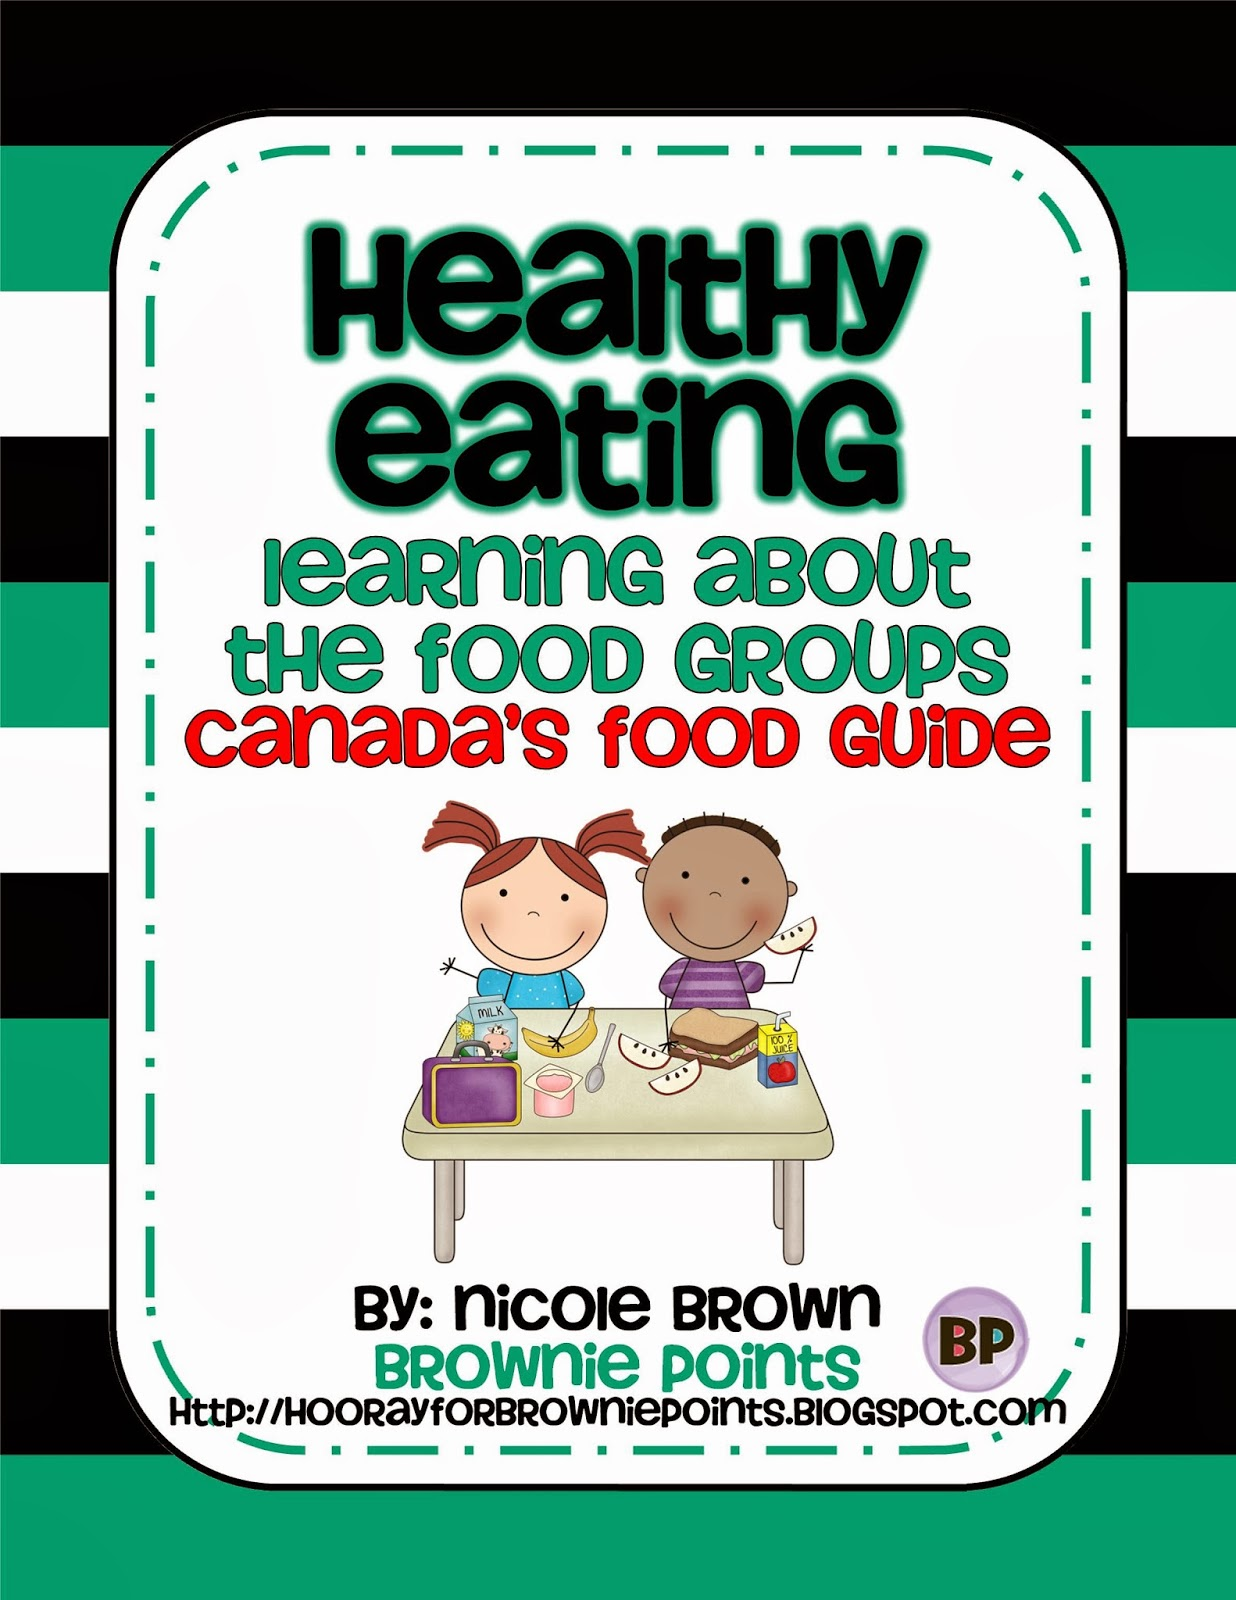 http://www.teacherspayteachers.com/Product/Healthy-Eating-Learning-About-the-Food-Groups-Canadas-Food-Guide-1030650